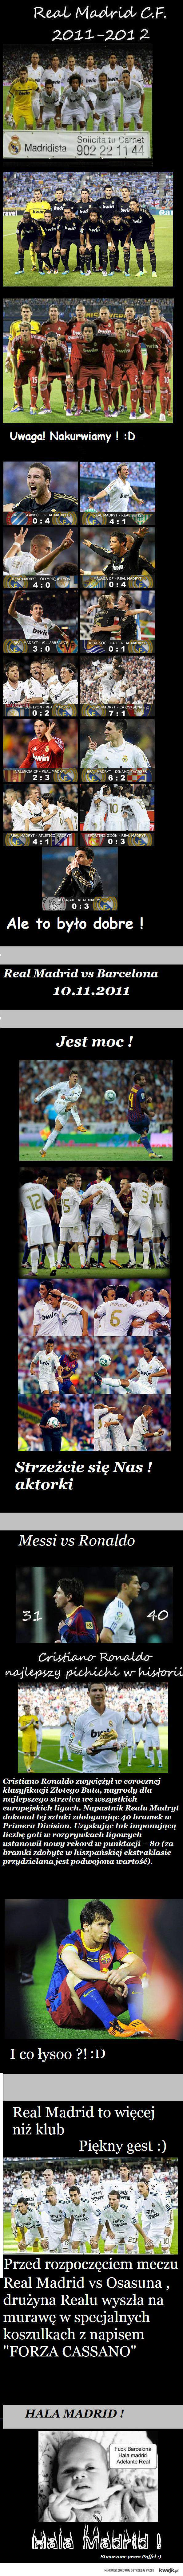 Real Madrid <33!